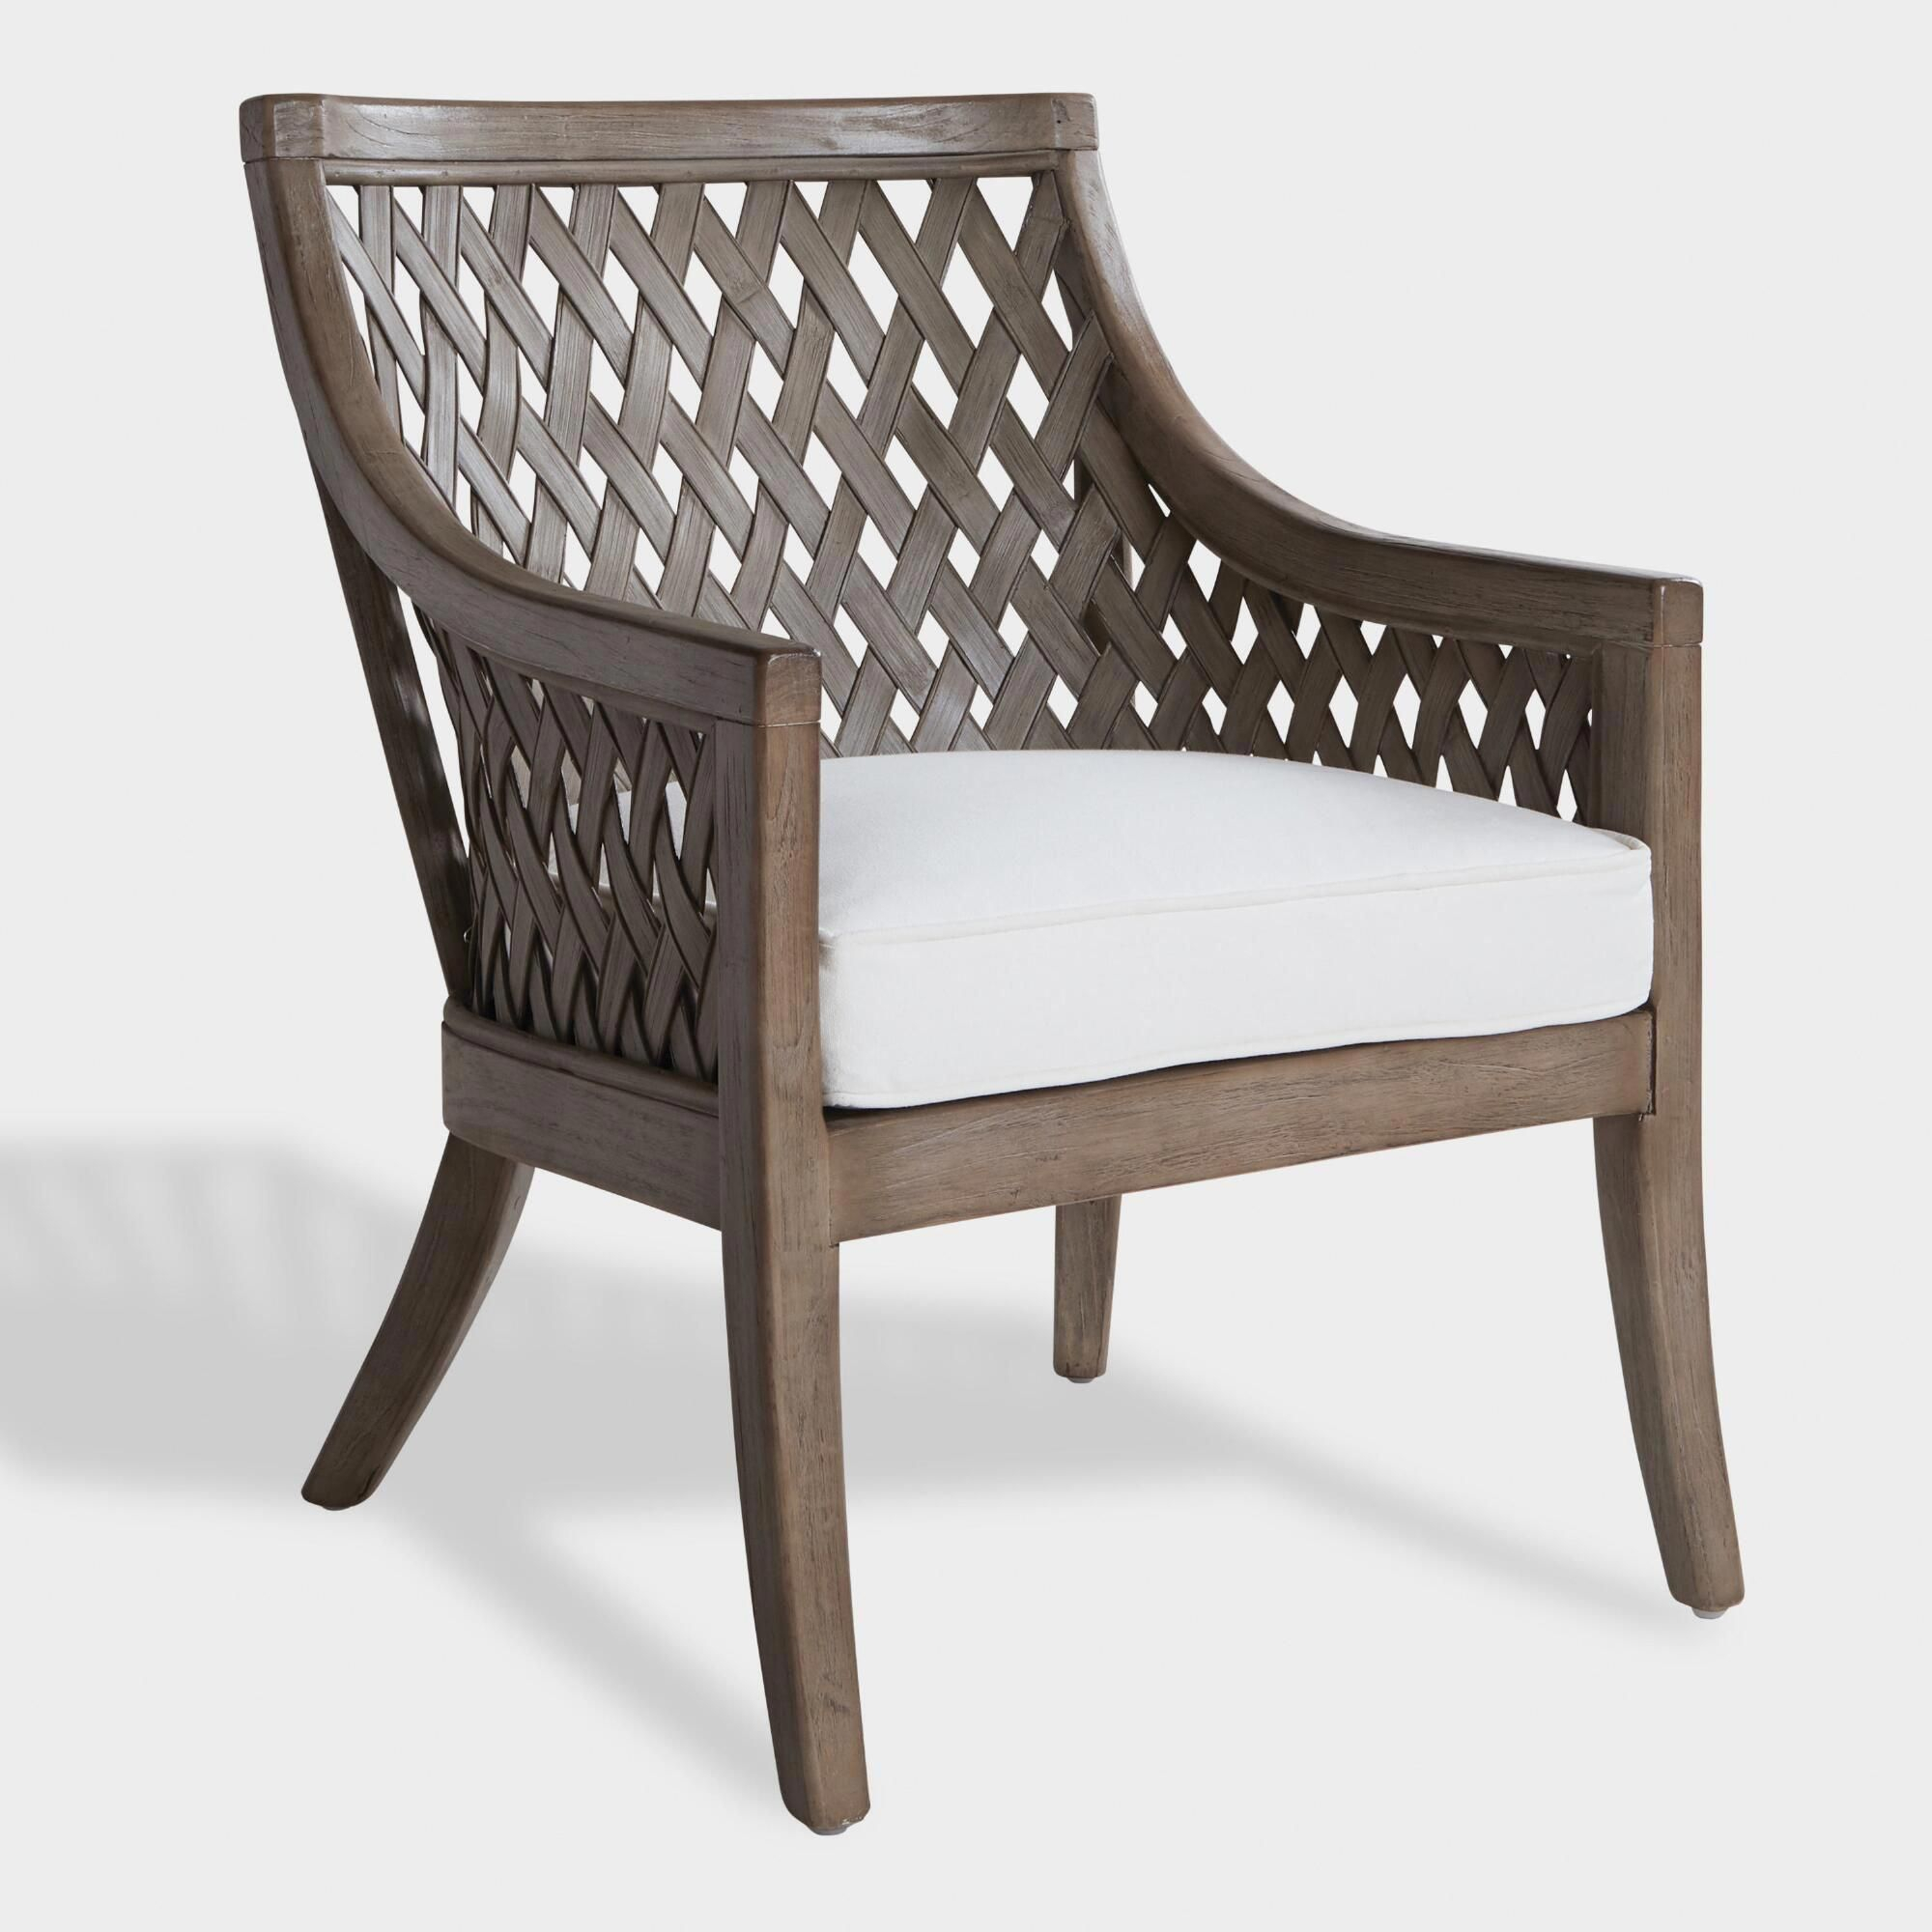 Graywashed Wood And Rattan Starla Chairworld Market Within Cohen Foam Oversized Sofa Chairs (View 21 of 25)